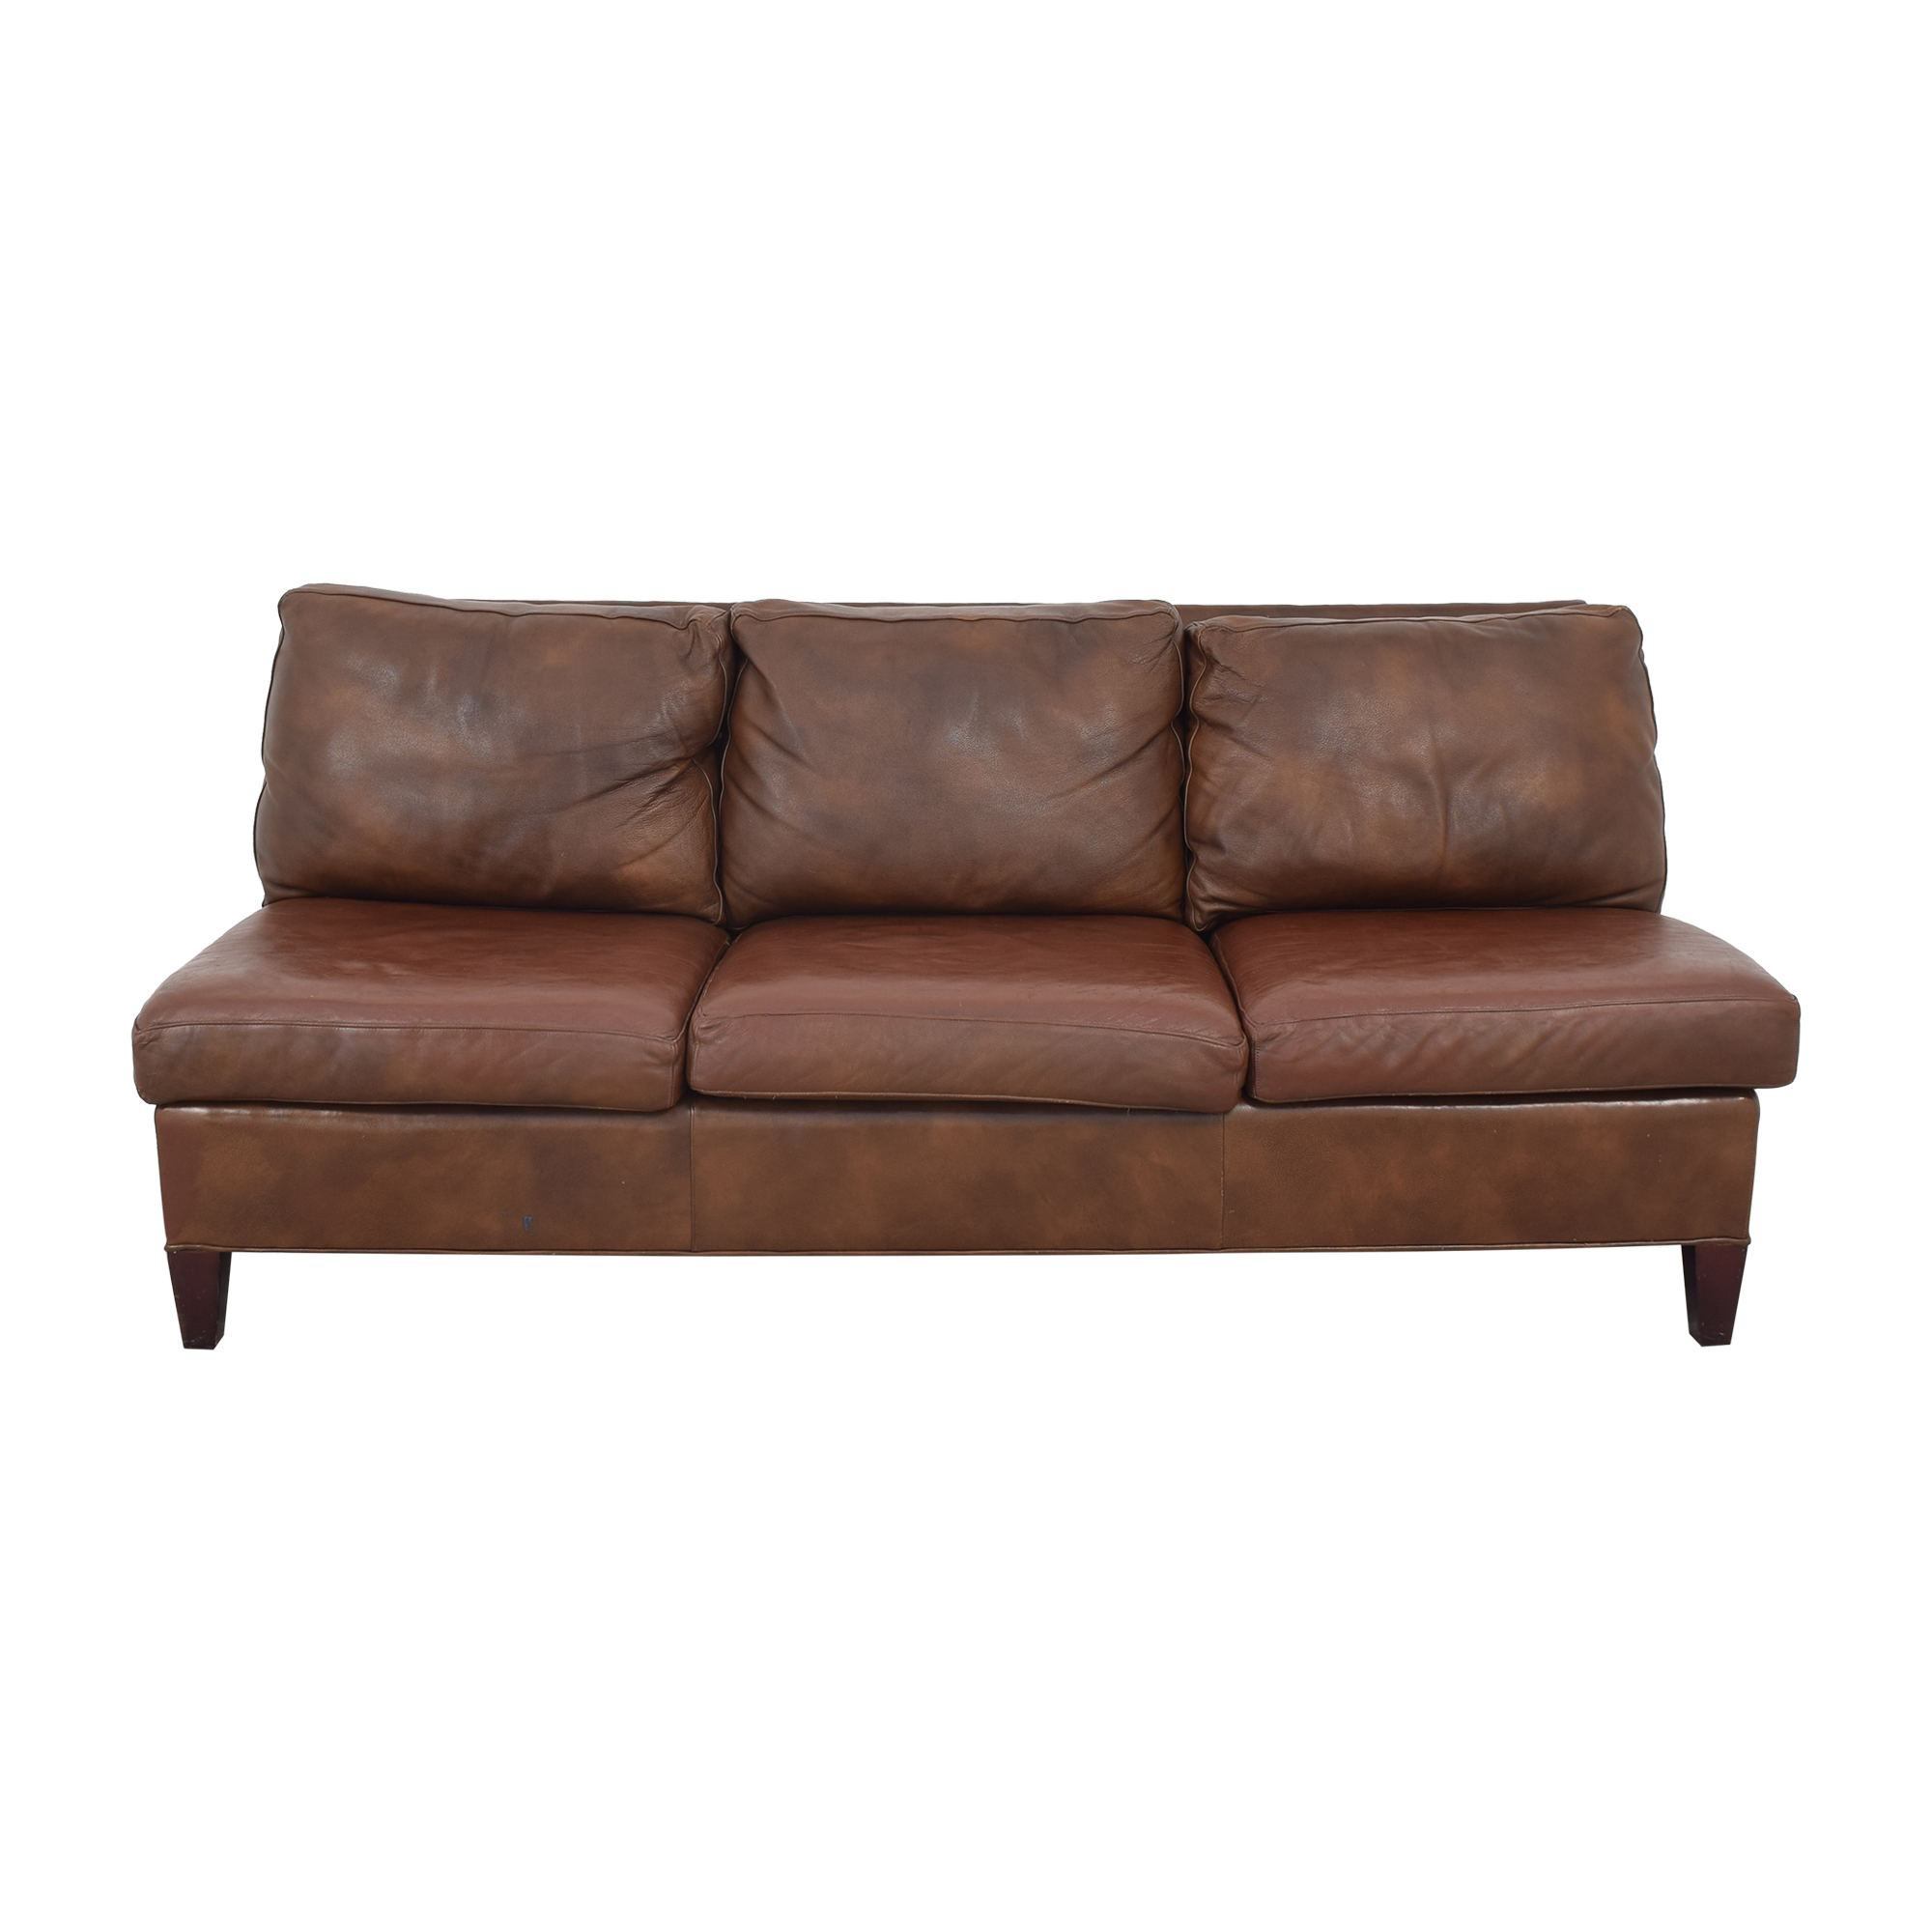 buy McKinley Leather Furniture Armless Sofa McKinley Leather Furniture Classic Sofas